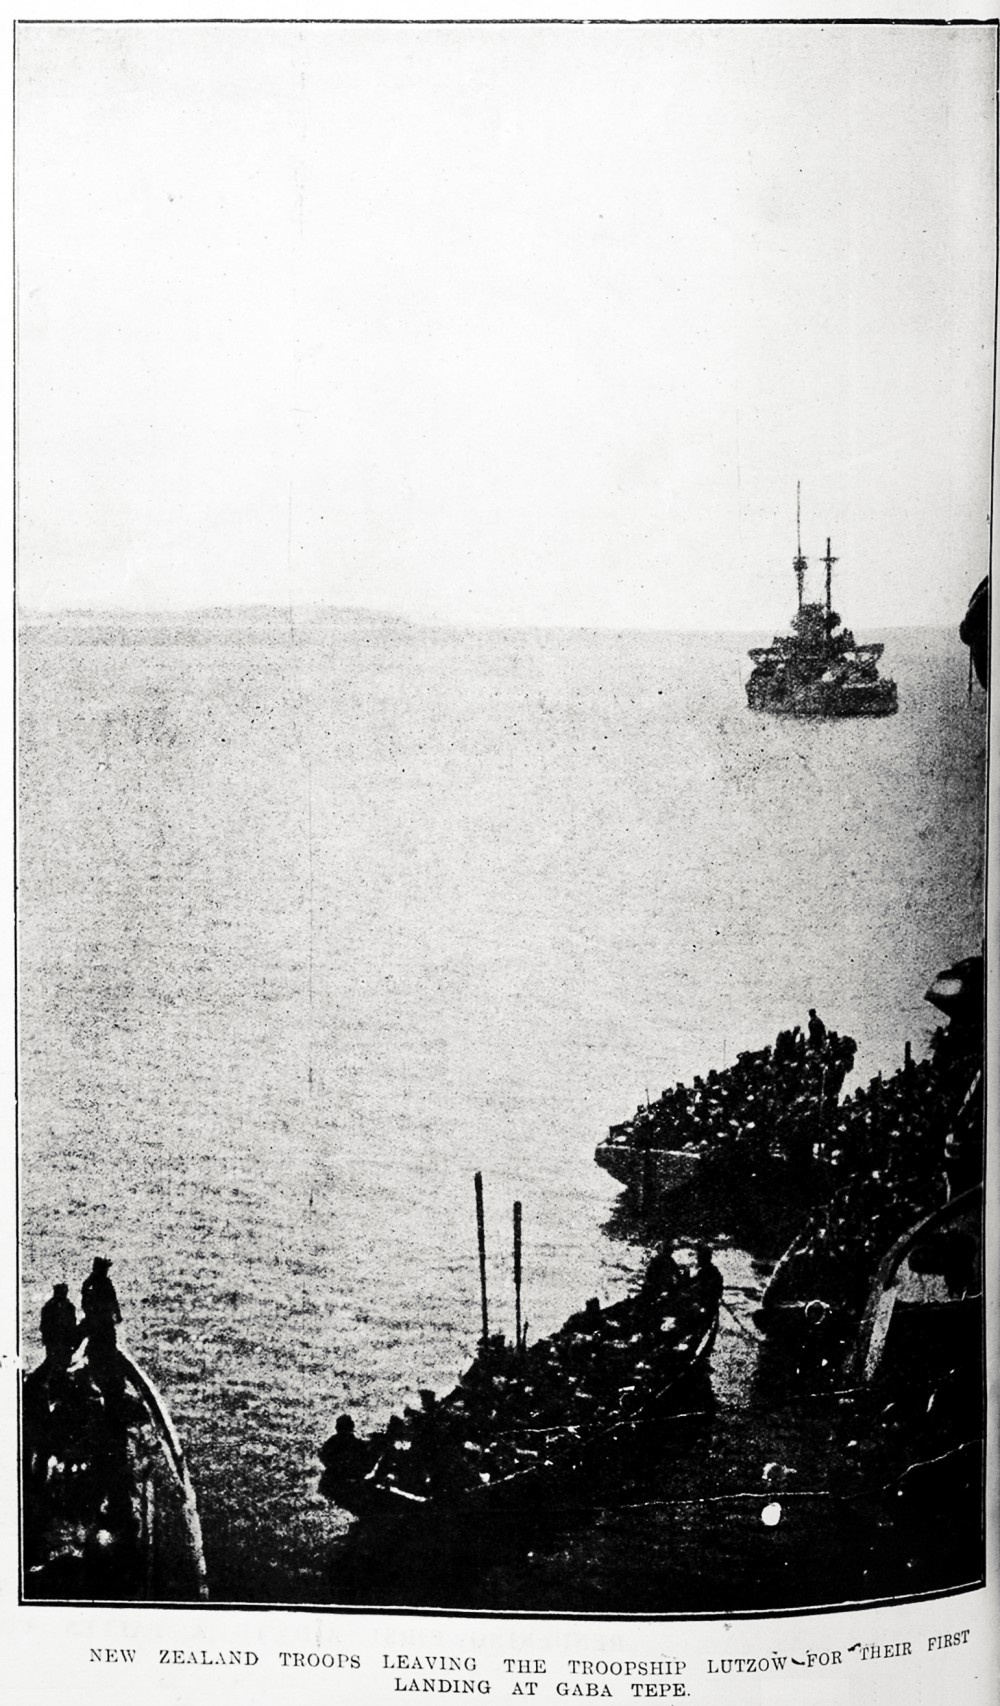 New Zealand troops leaving the troopship Lutzow for their first landing at Gaba Tepe. - Auckland Libraries